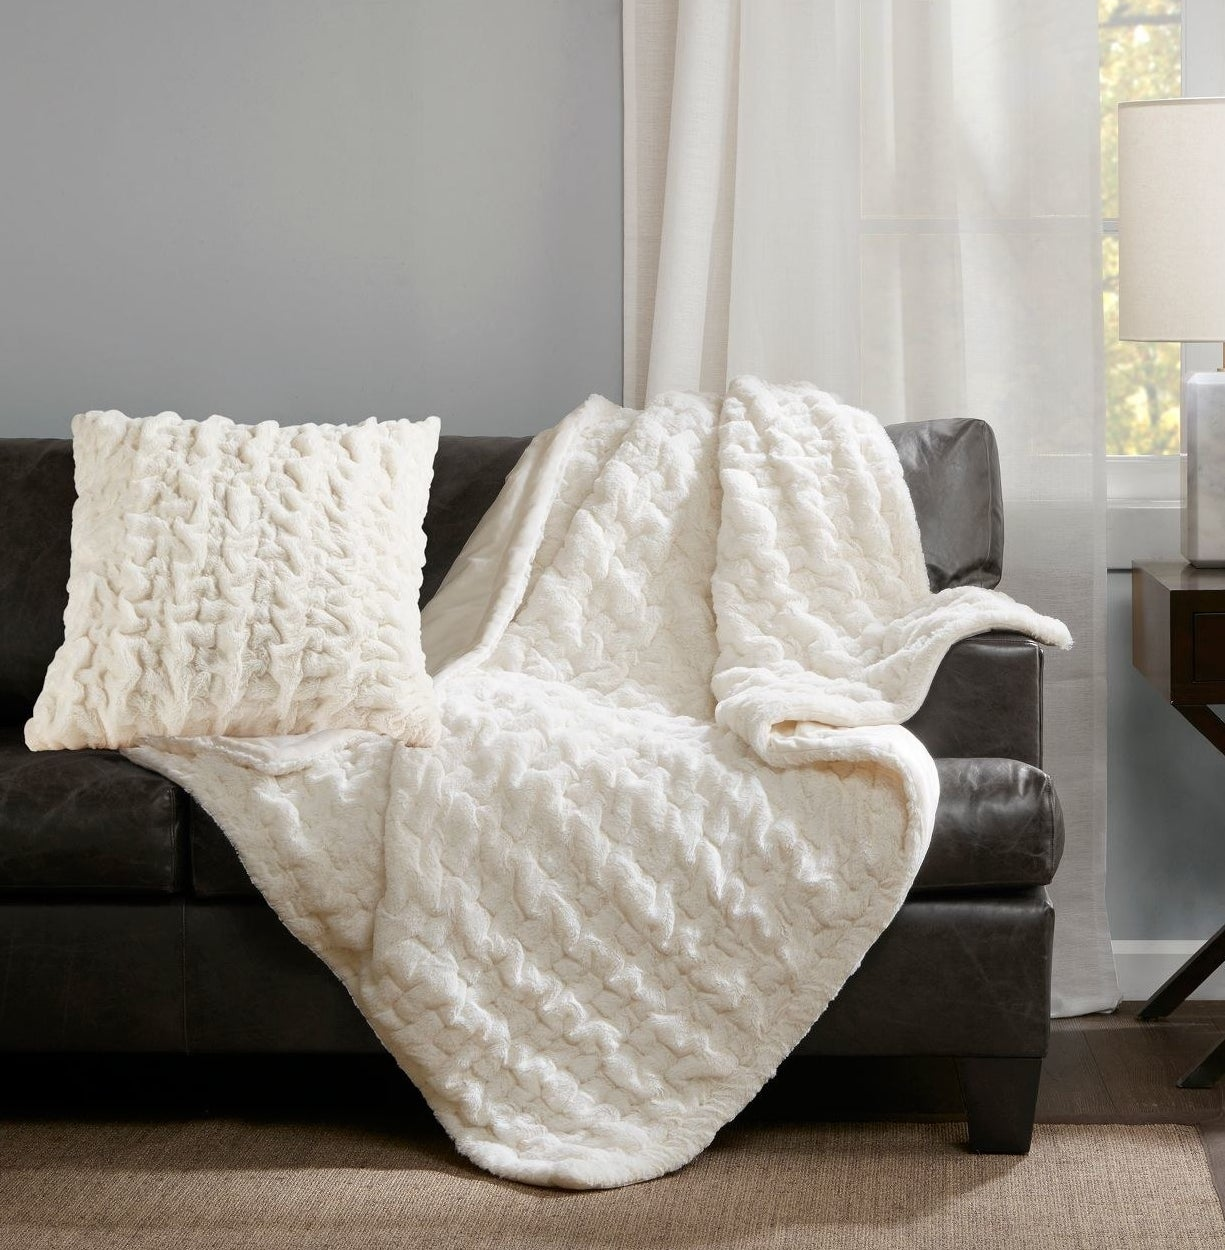 The throw in white draped over a couch beside a matching pillow